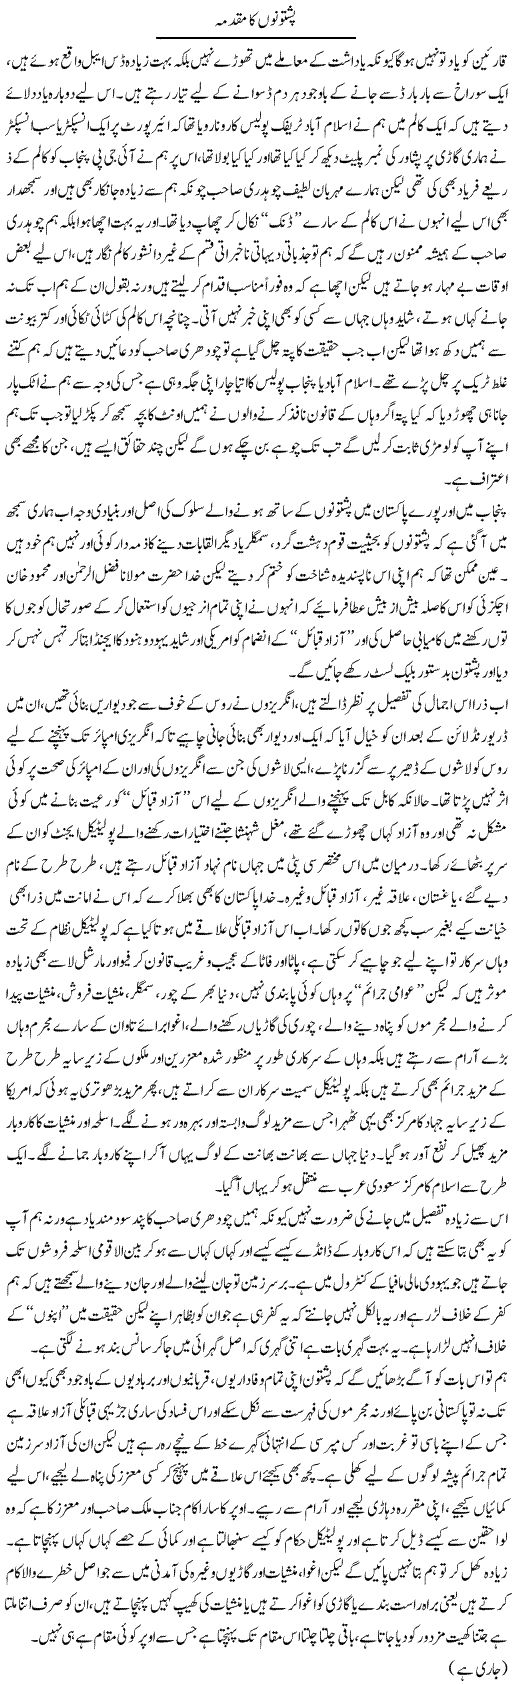 Saadullah Jan Barq Urdu Column puchtonon ka muqadma (With